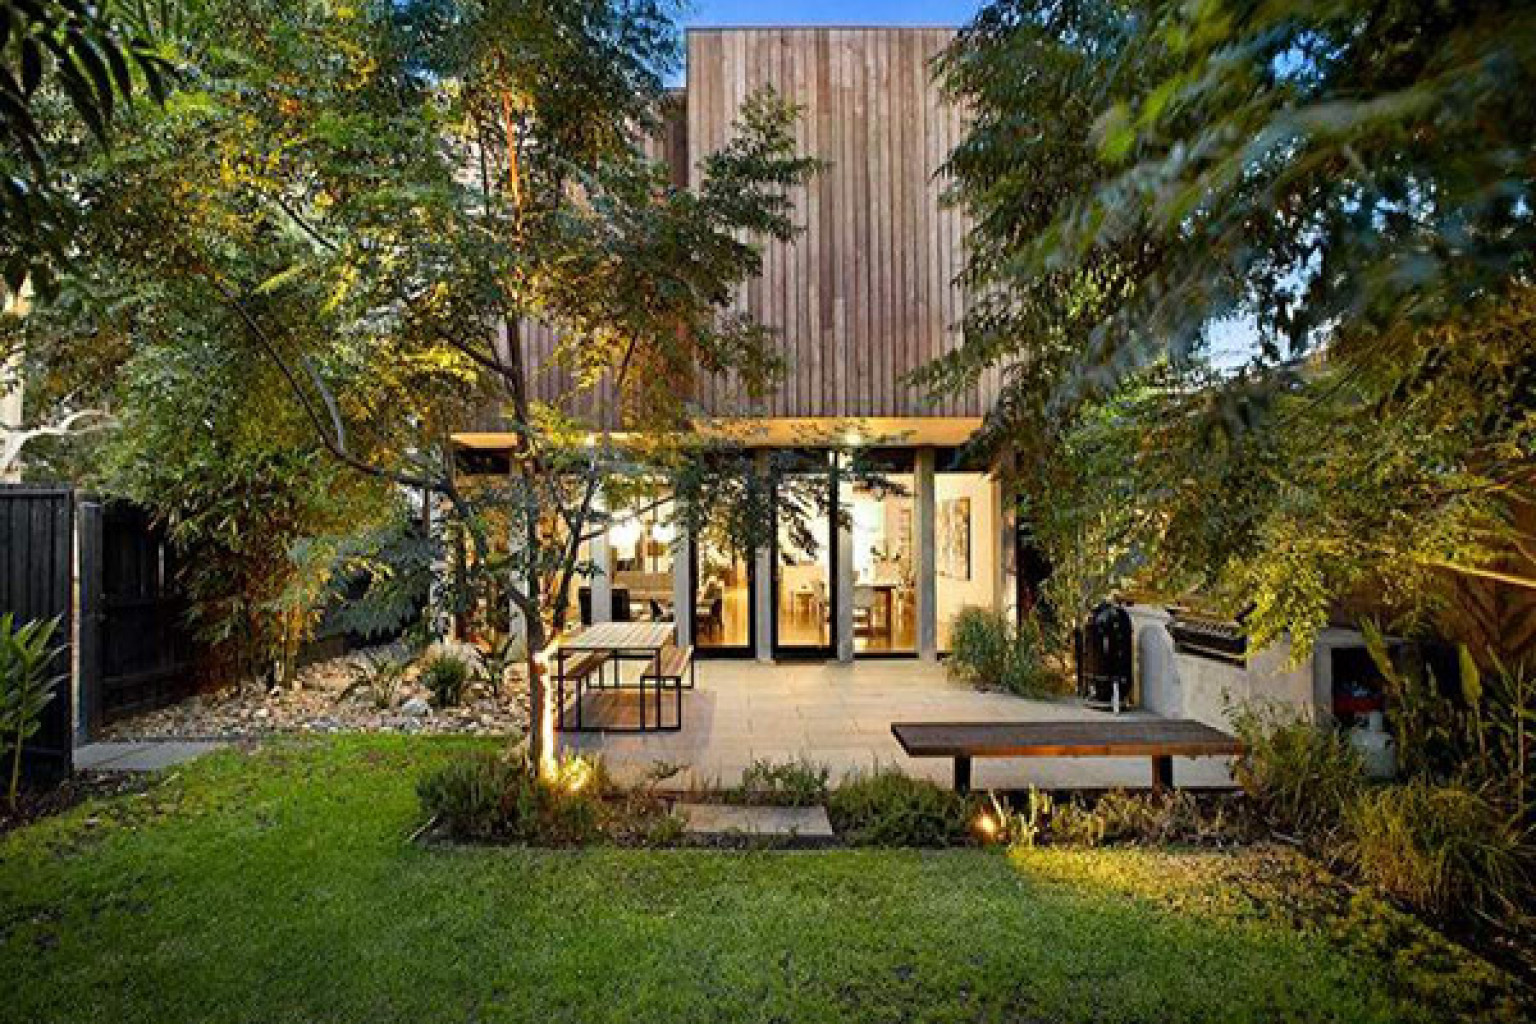 Melbourne Australia Luxury Home Has The Ultimate Backyard For Relaxing And Unwinding Photos